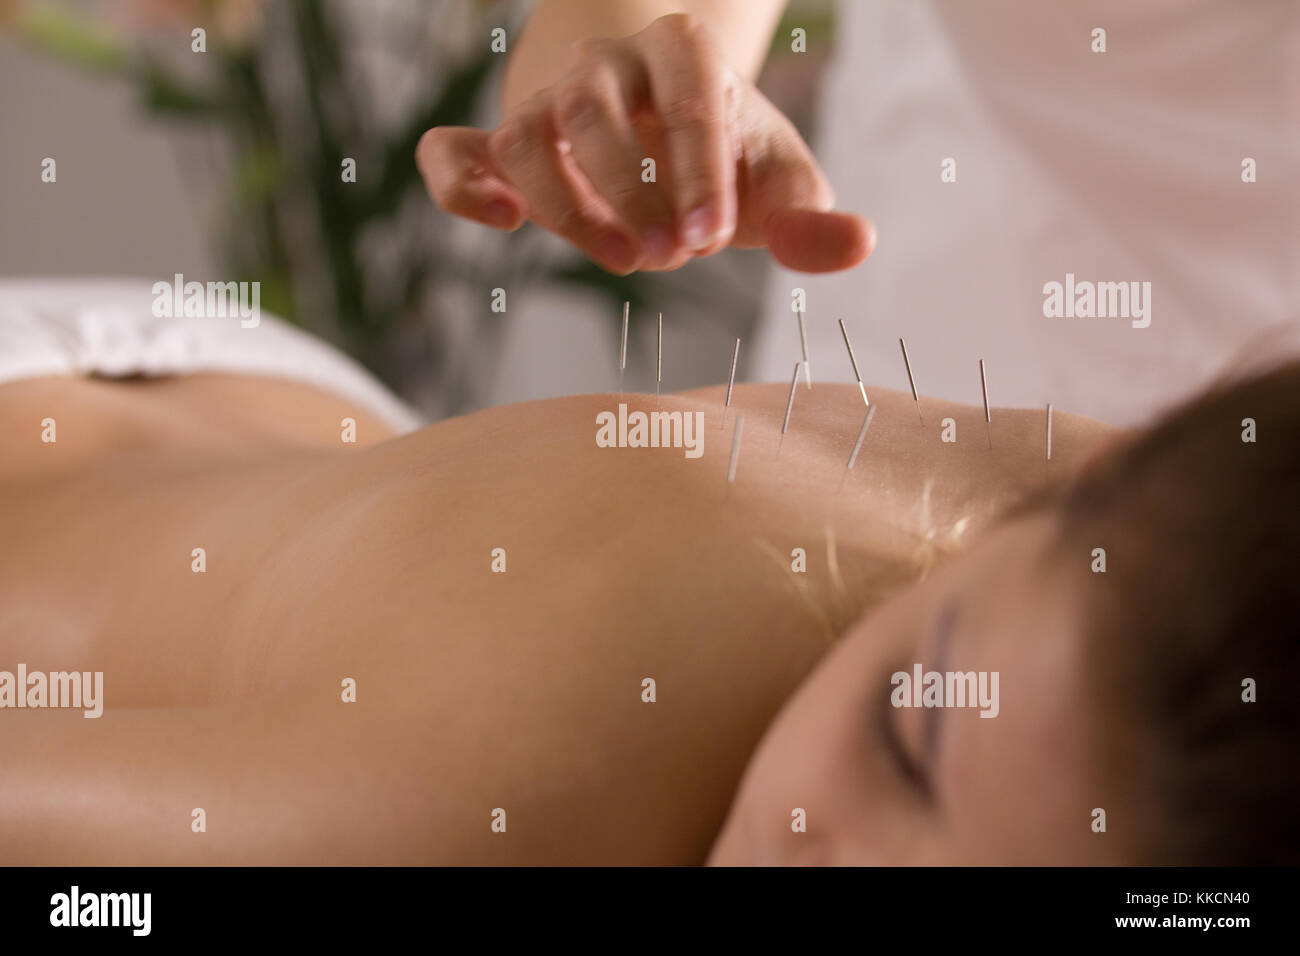 The doctor sticks needles into the girl's body on the acupuncture - Stock Image